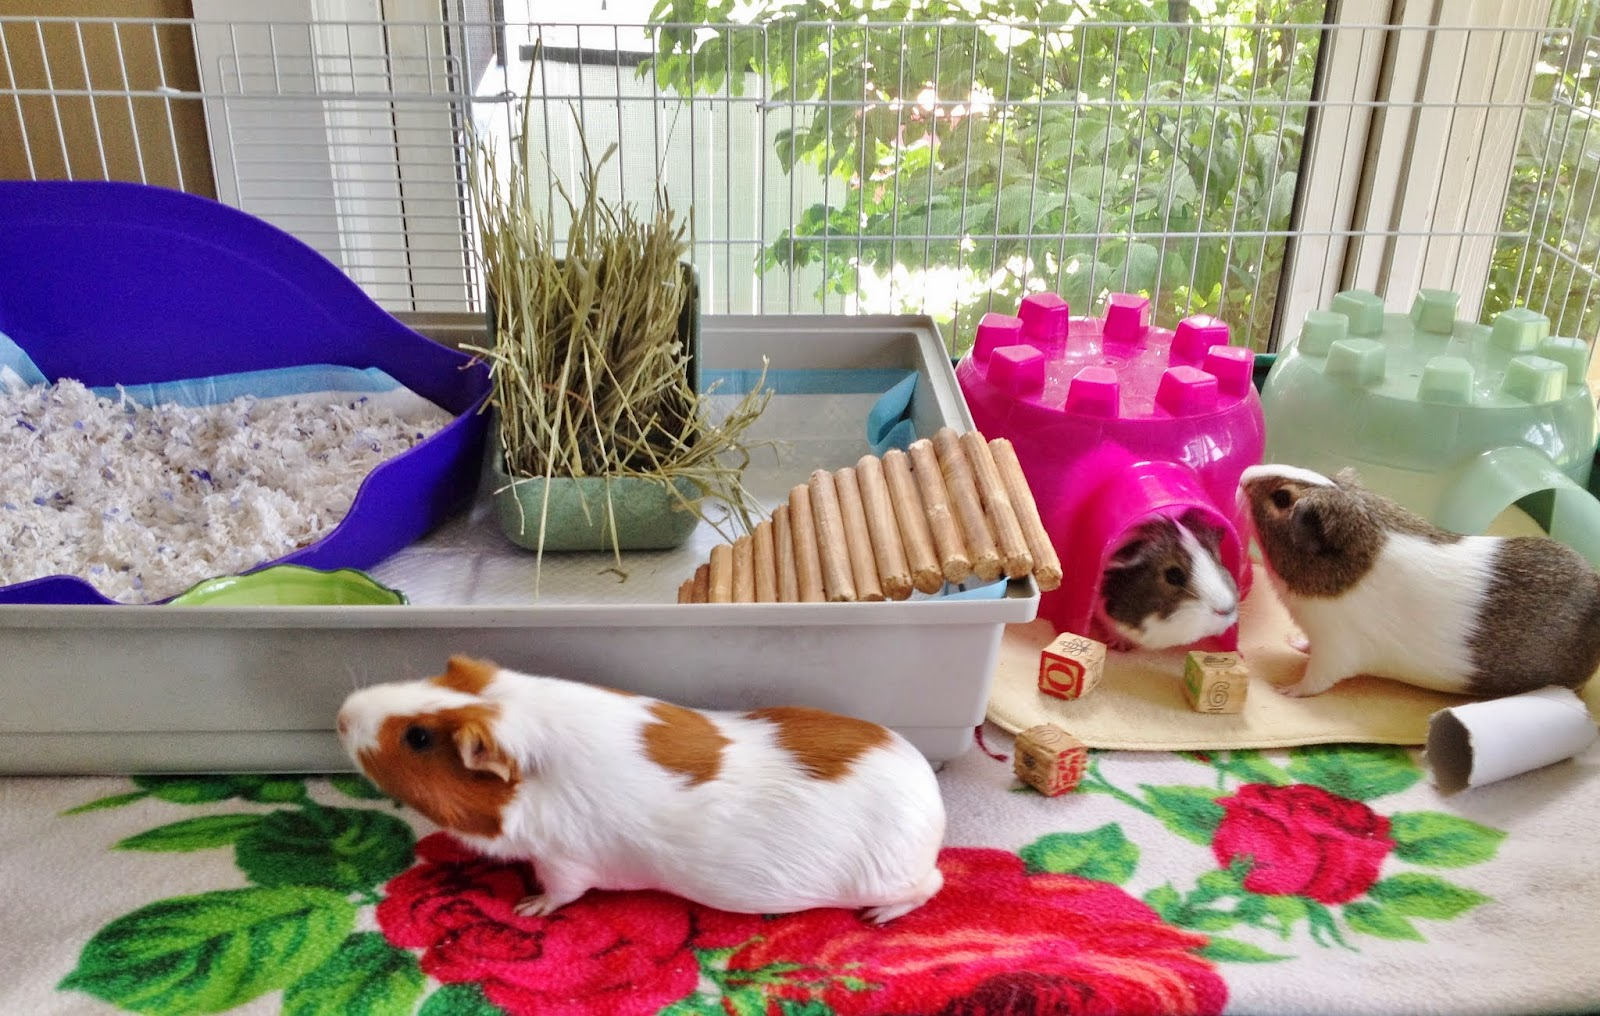 Cute guinea pigs happily exploring their clean home.